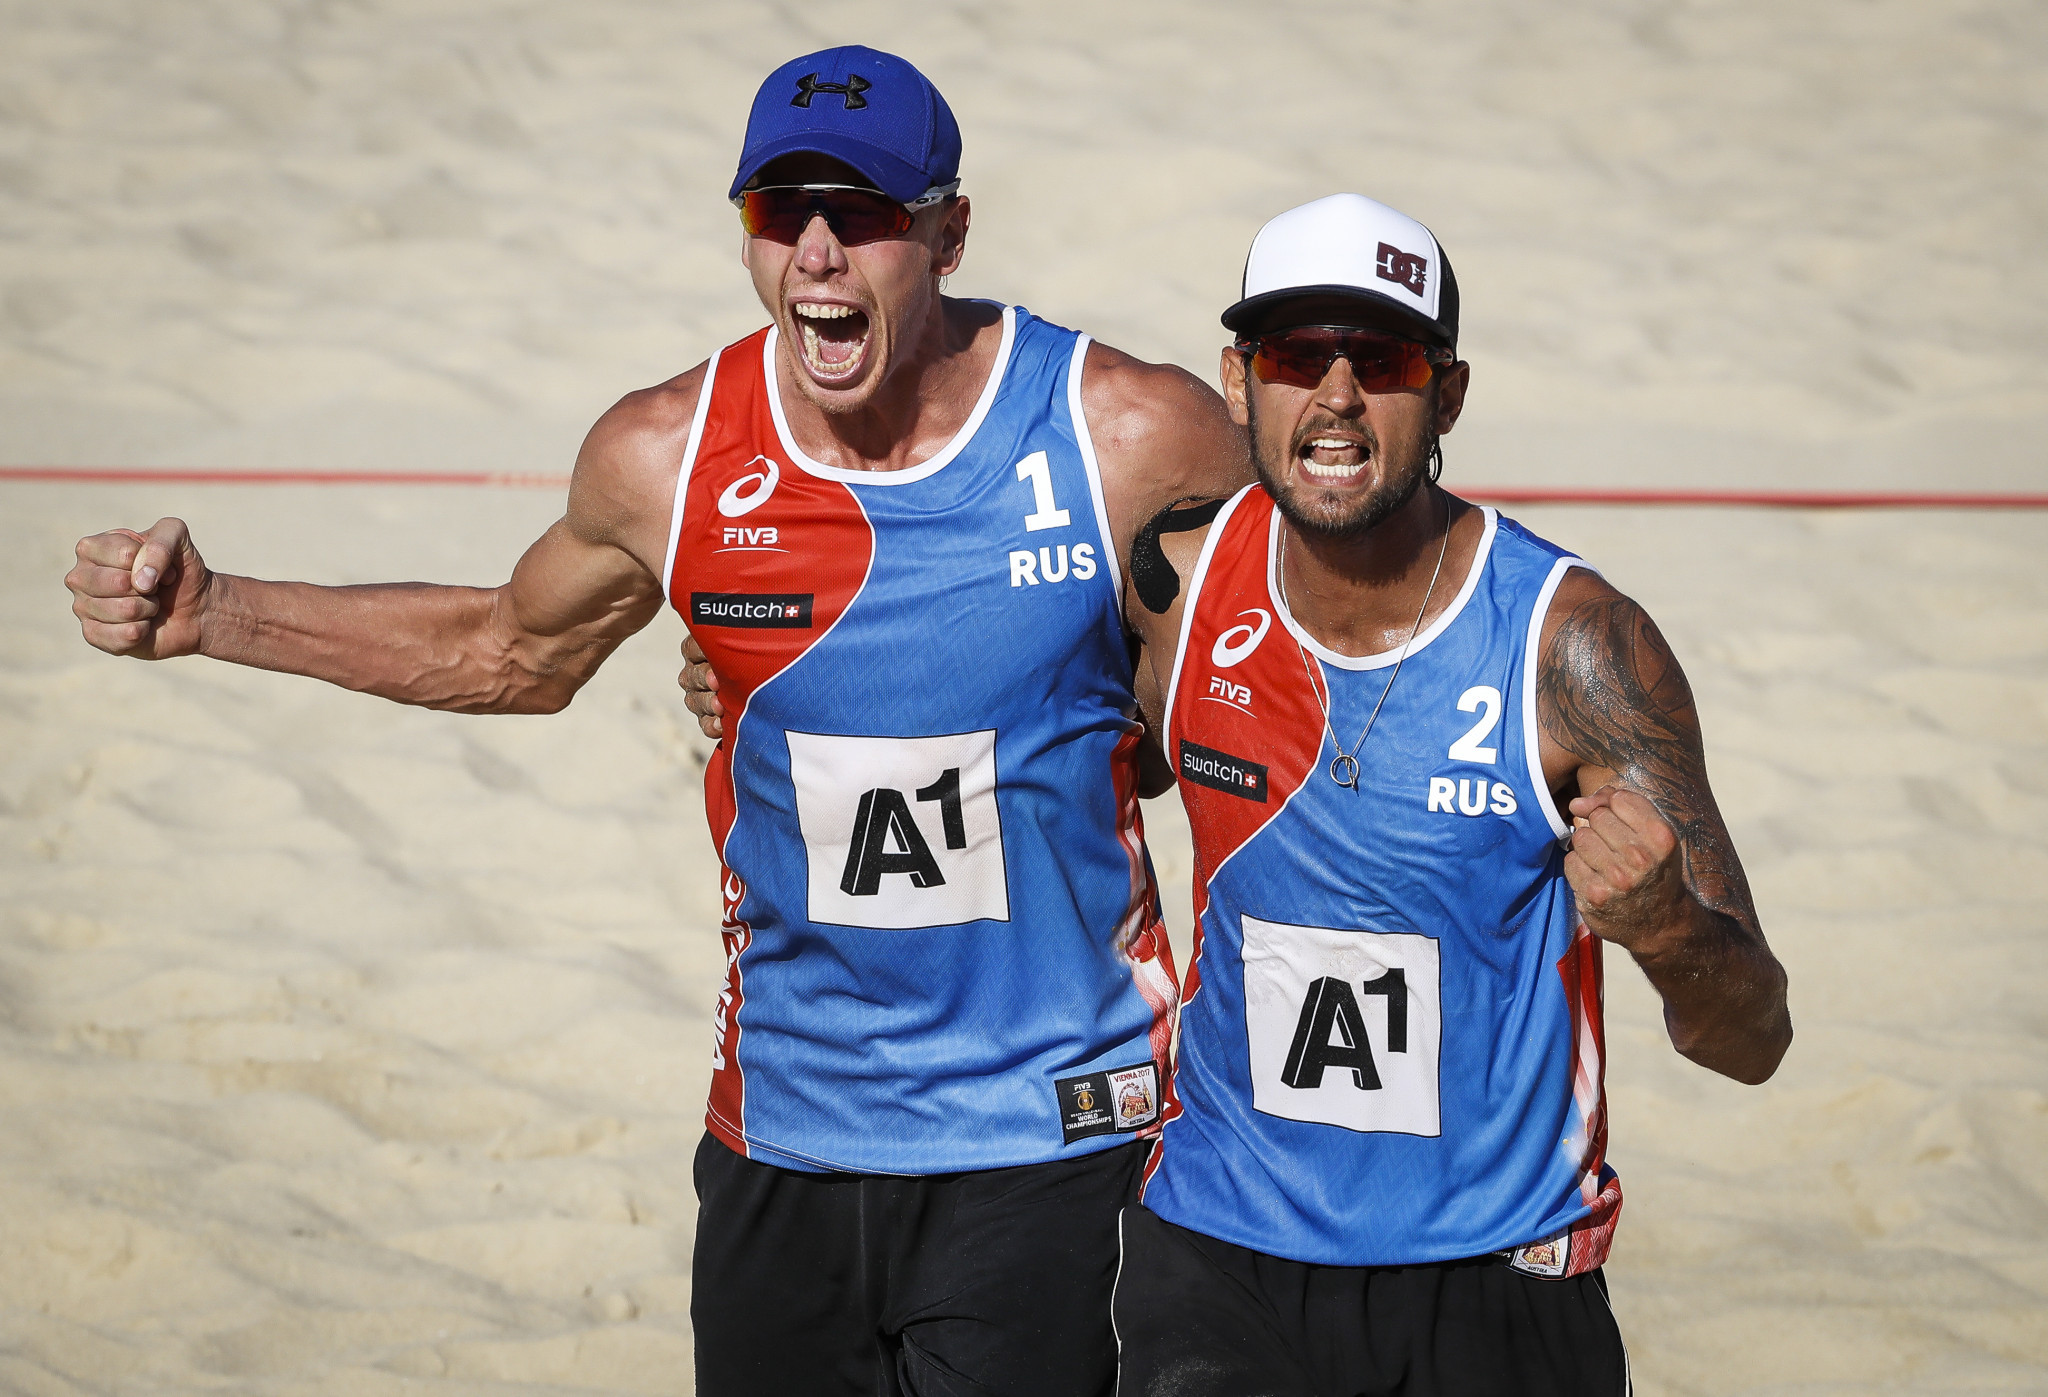 Top seeds through in men's FIVB Beach Volleyball World Tour